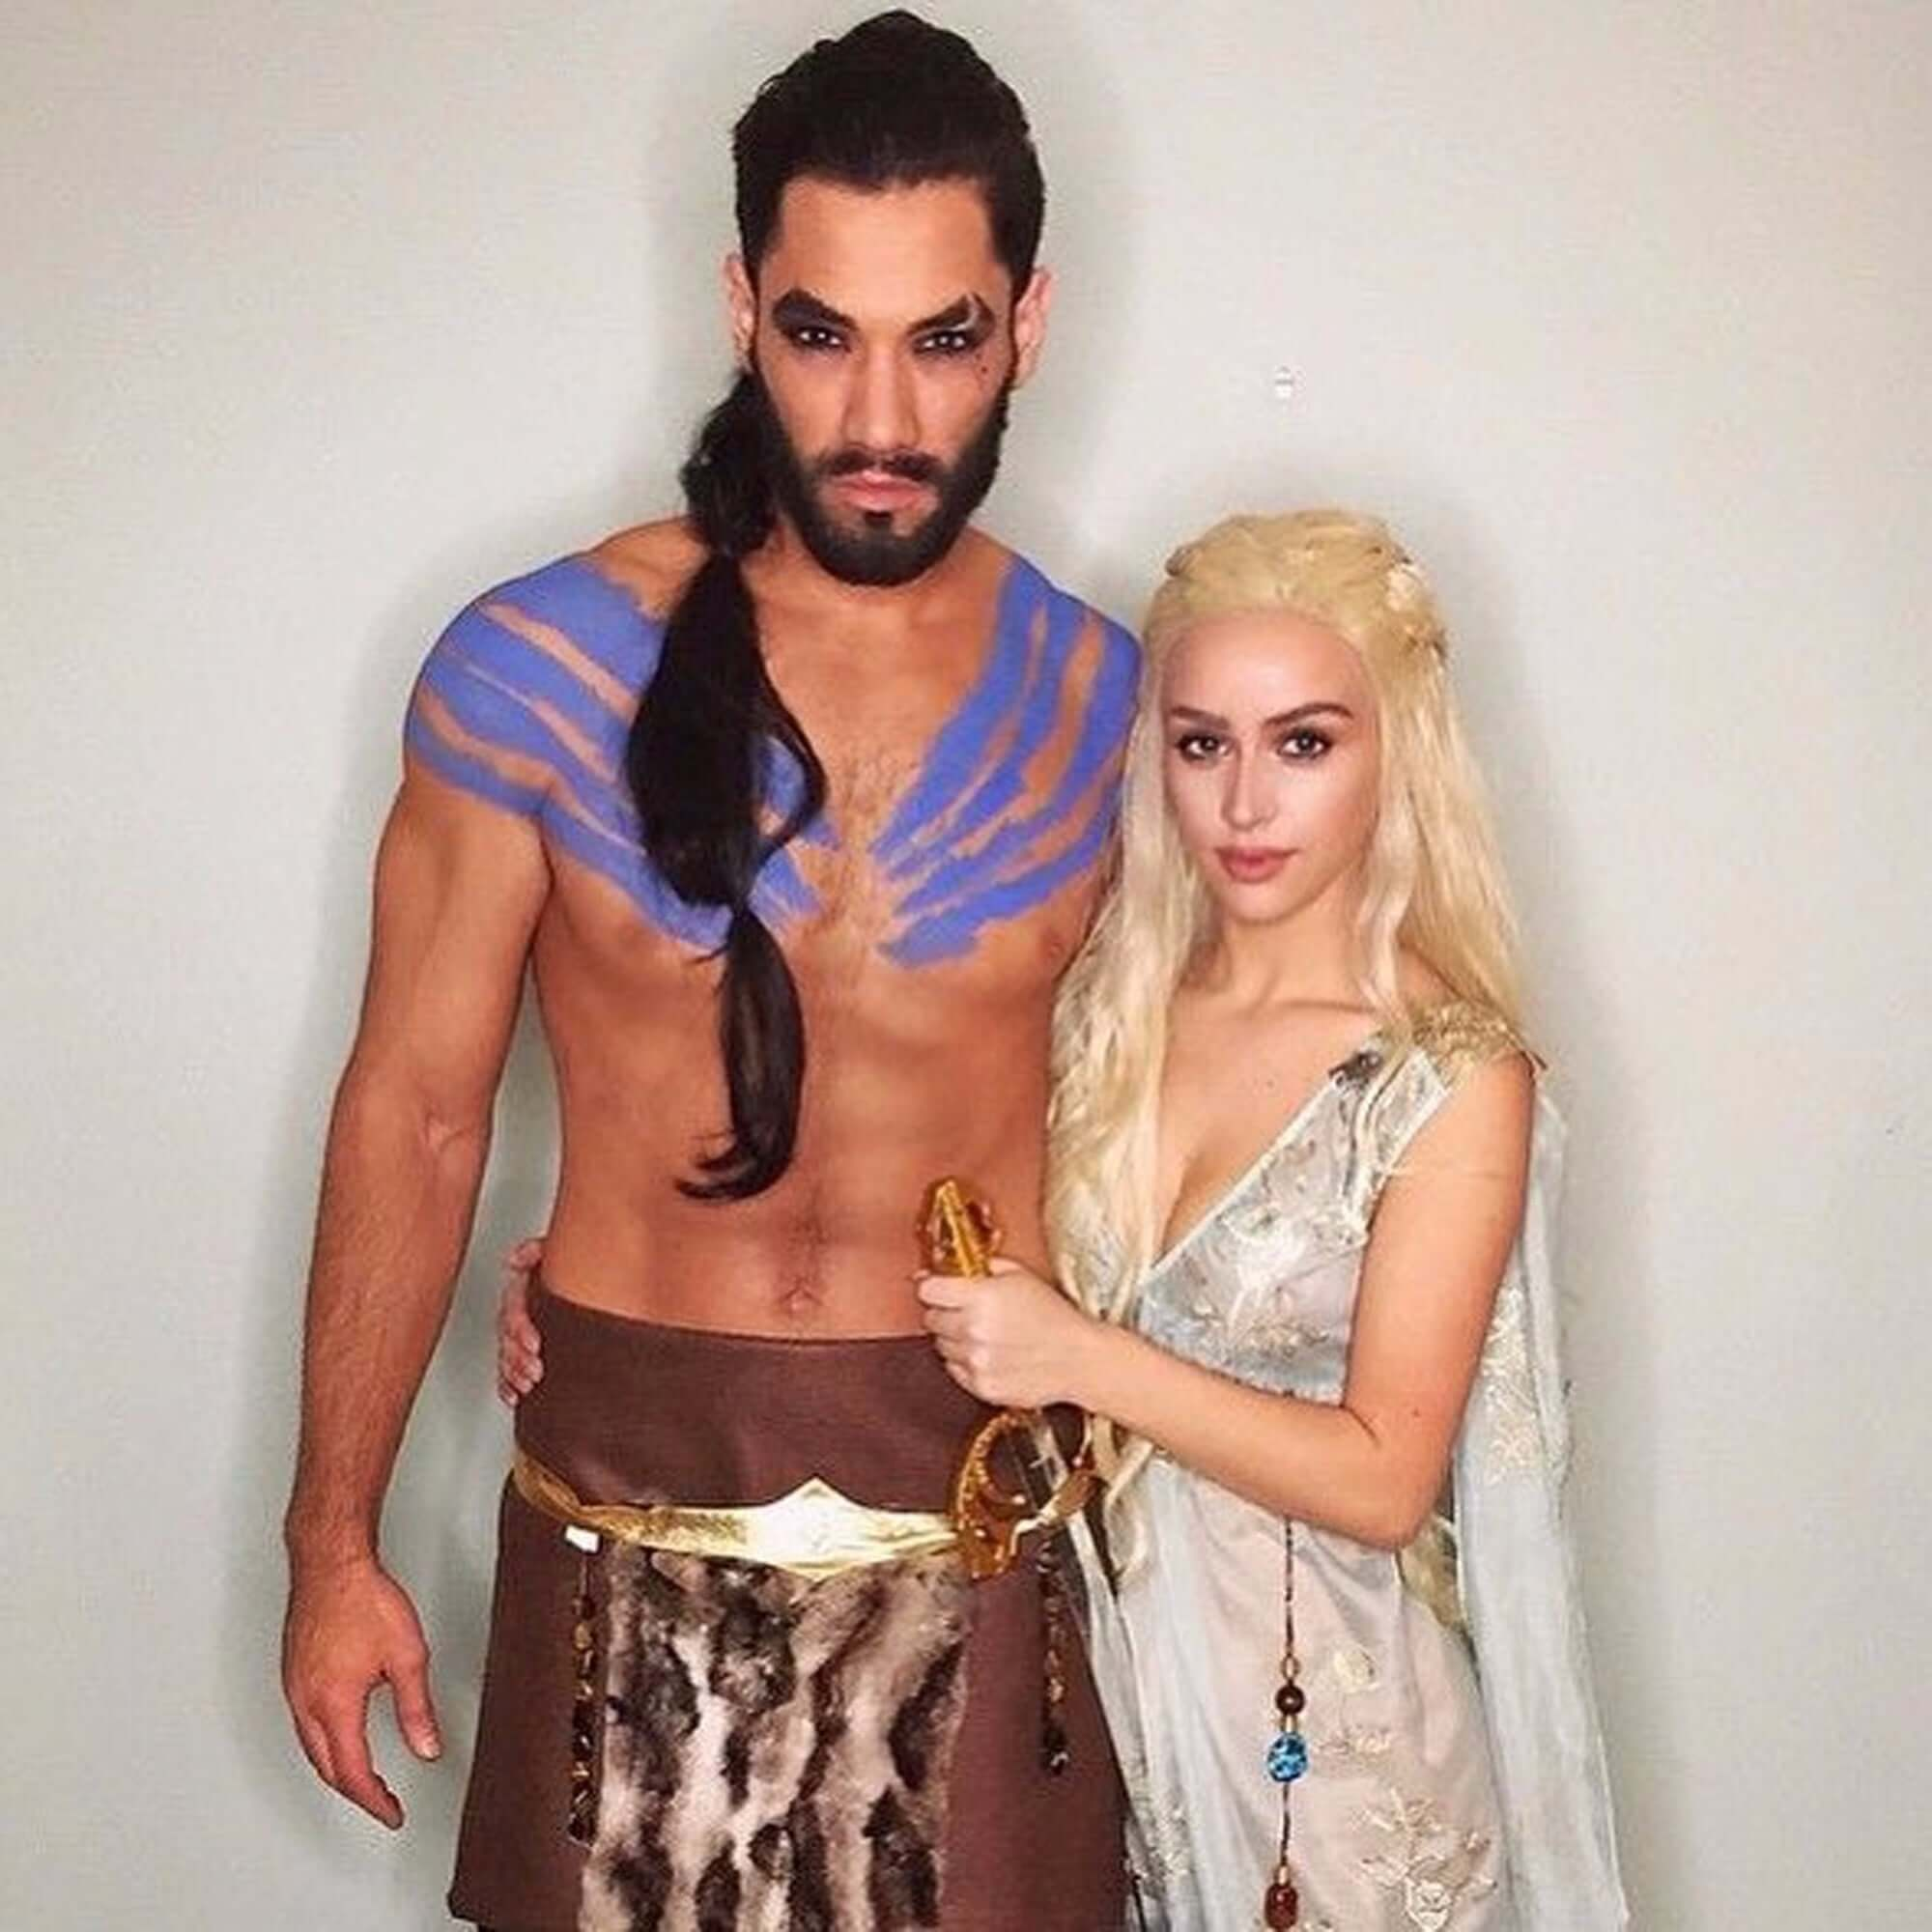 Game-of-Thrones-funny-halloween-costume-for-couple